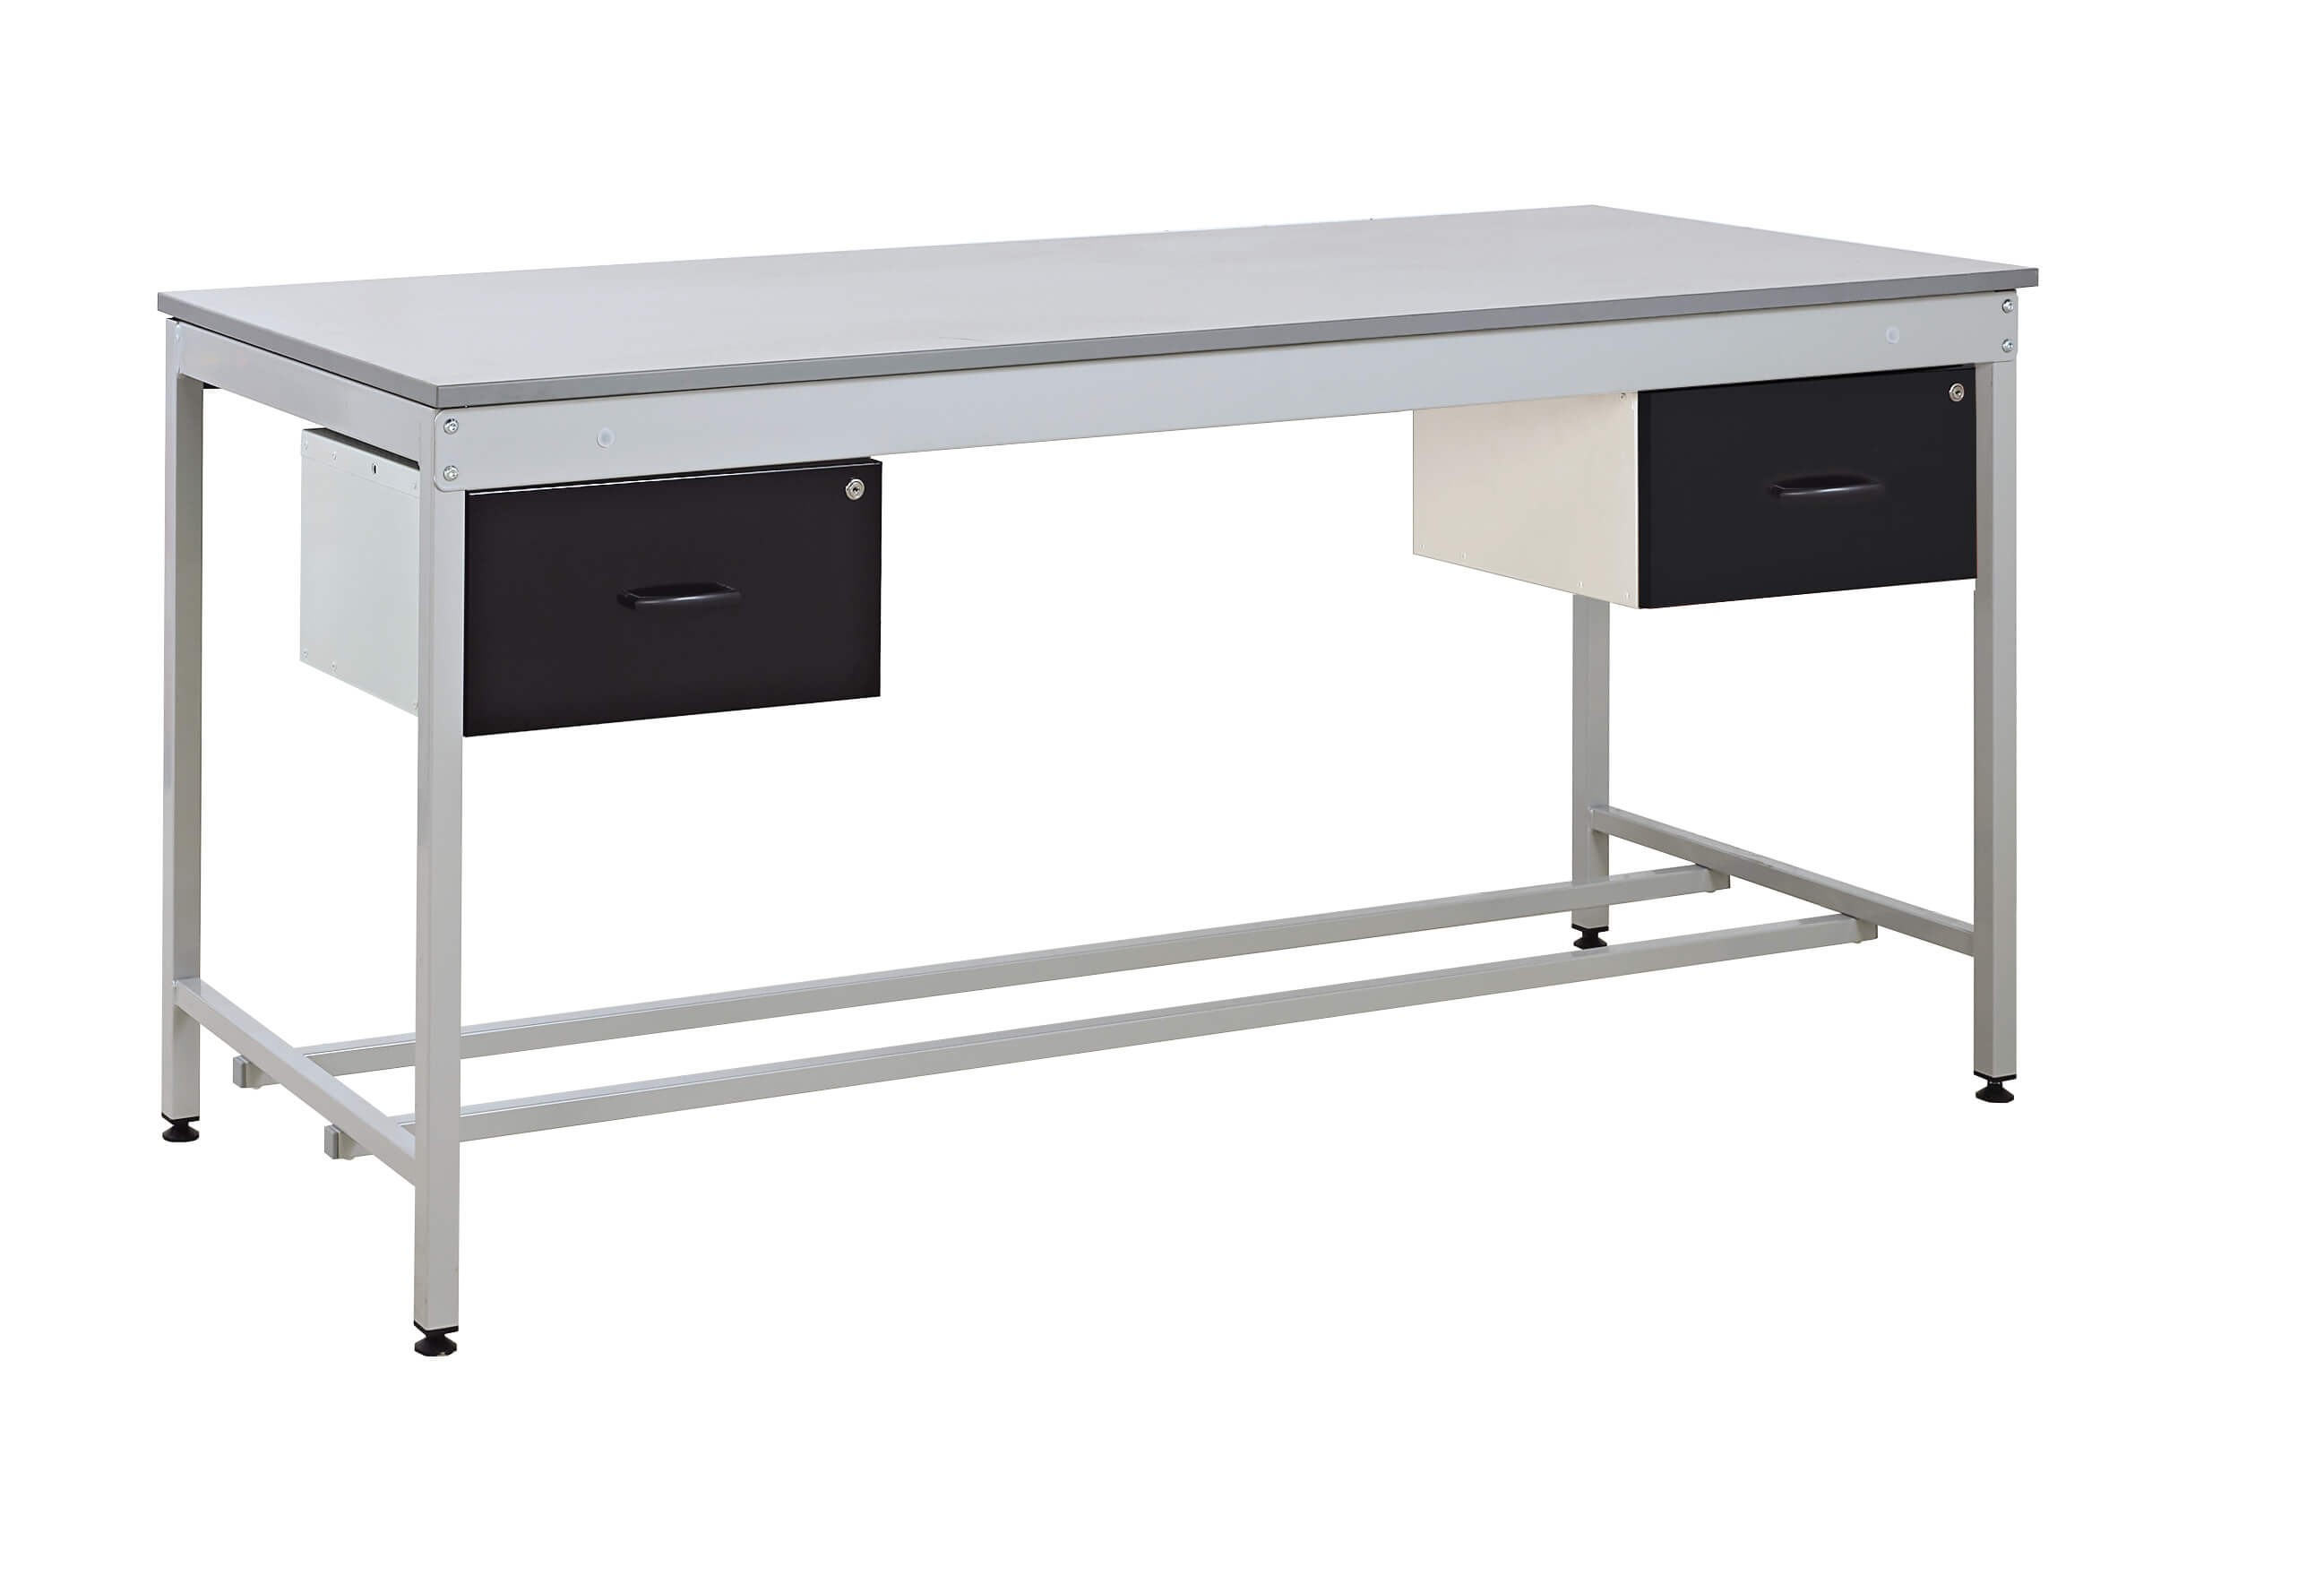 Taurus Utility Workbench - 2x Single Drawers